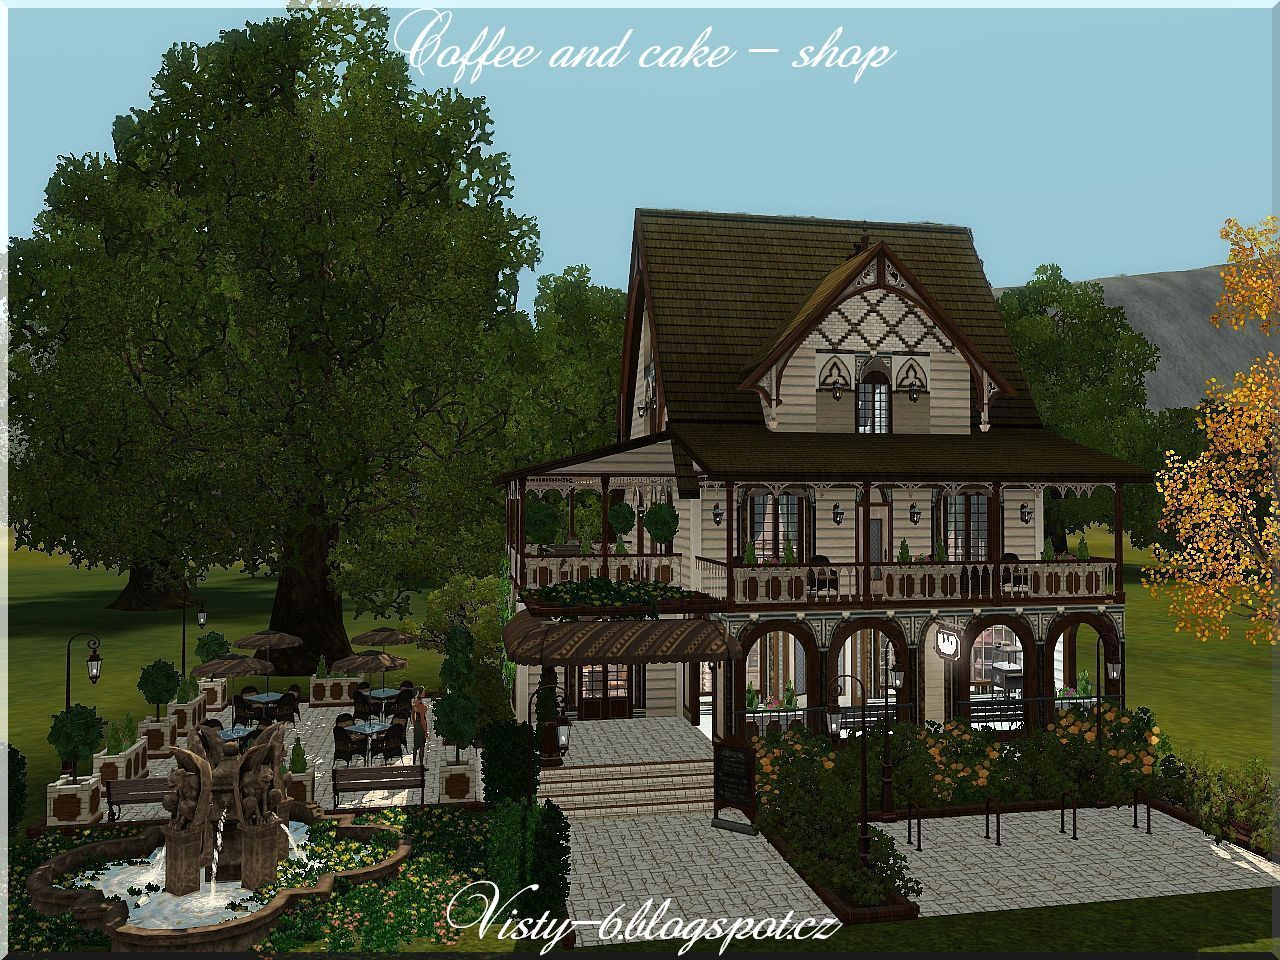 Coffee and Cake Shop by Visty6